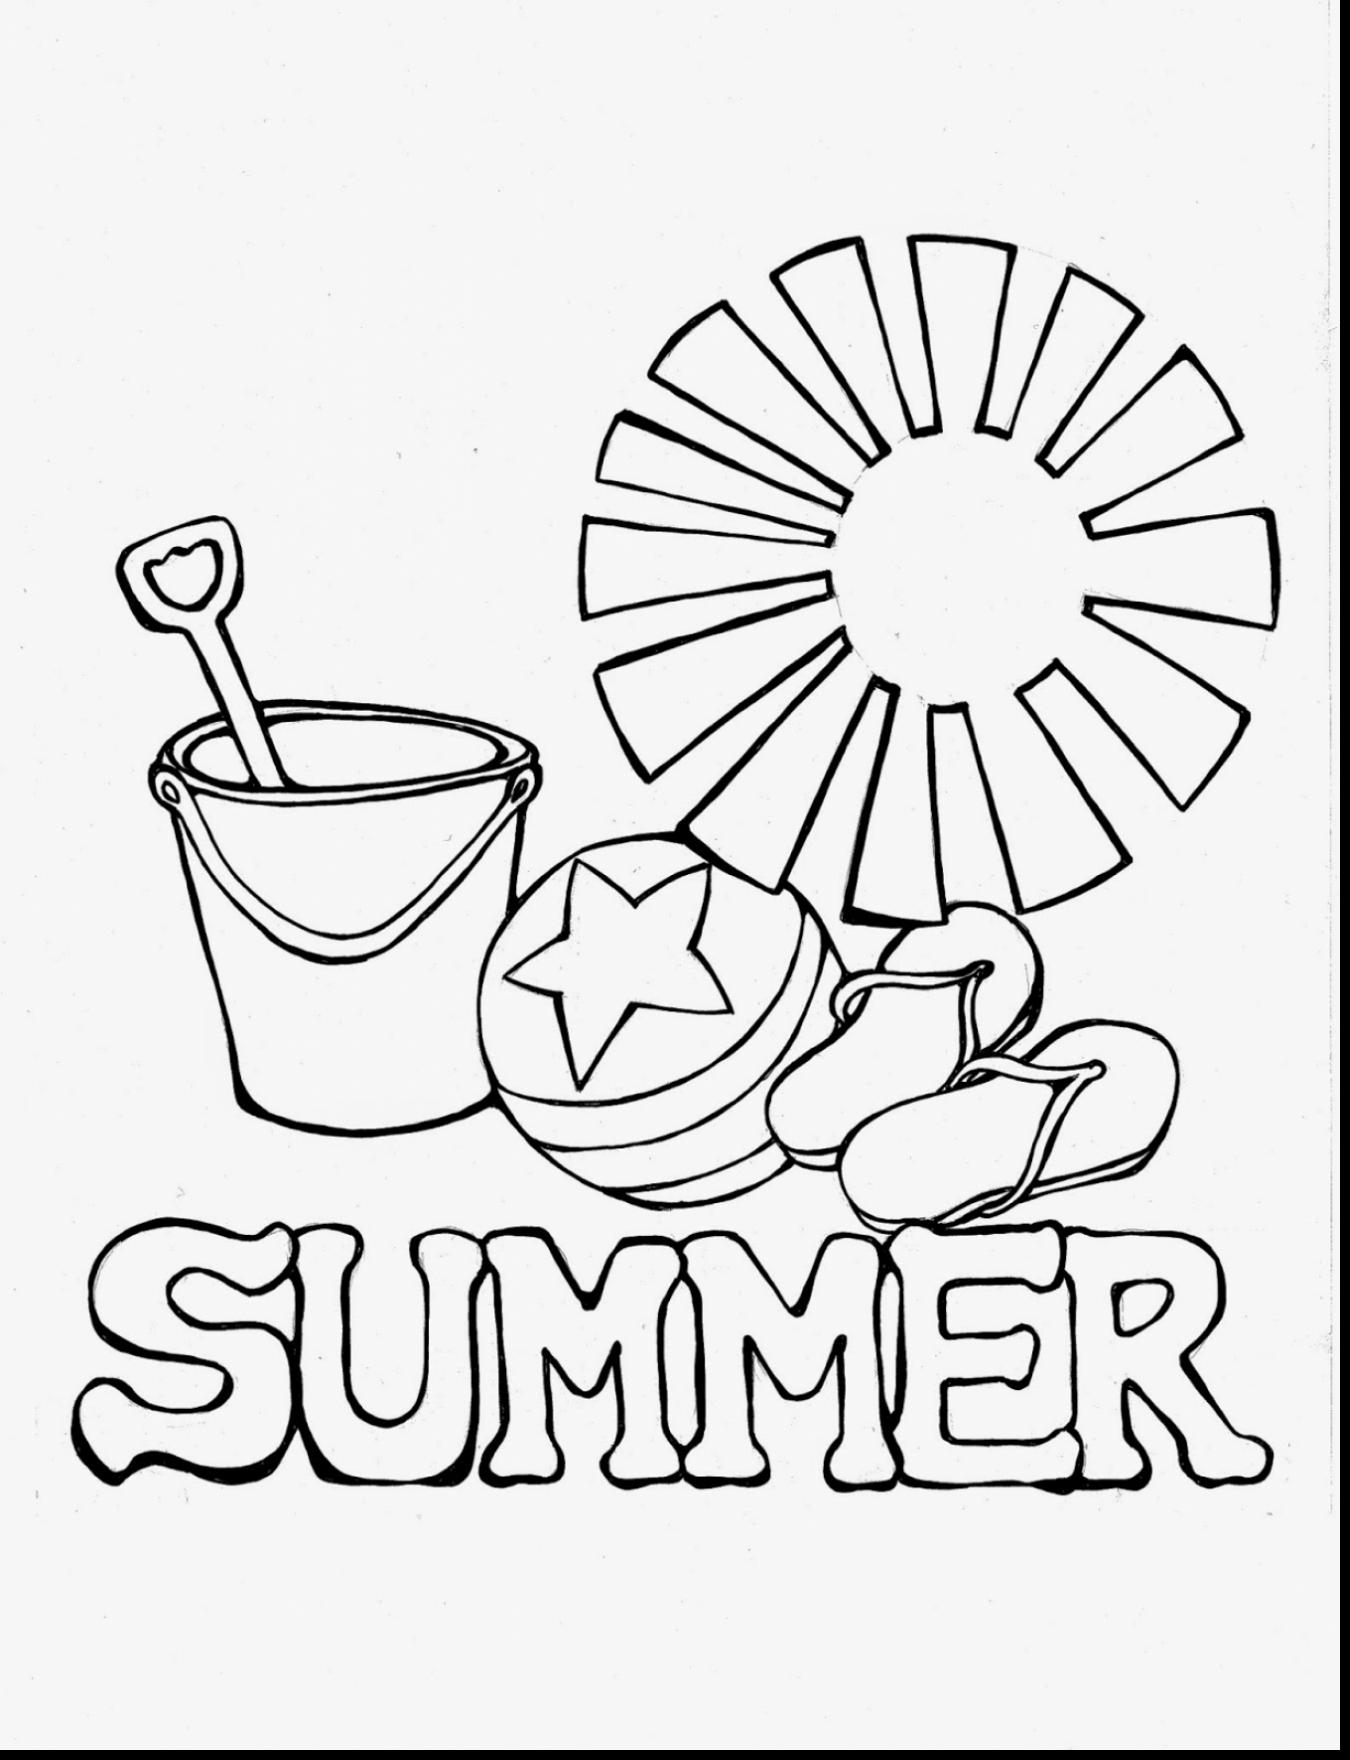 1350x1760 Spectacular Summer Coloring Pages With Summertime Coloring Pages